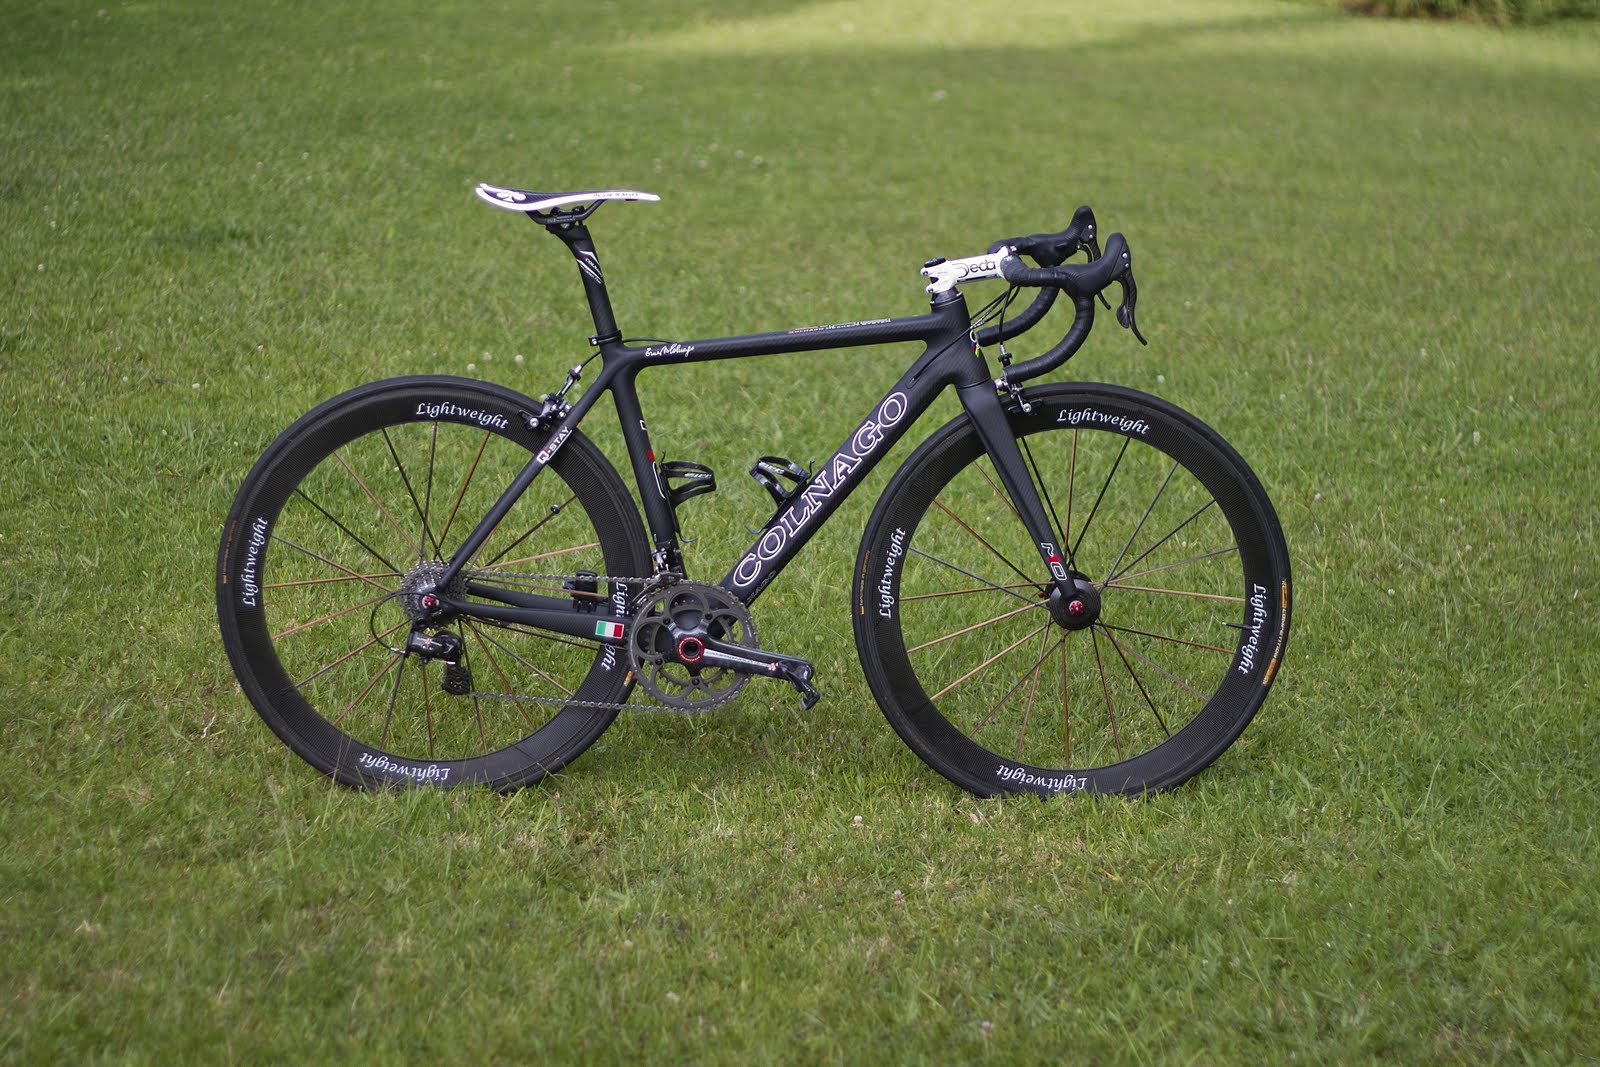 How are Focus bikes and why are they always on sale? - Page 3